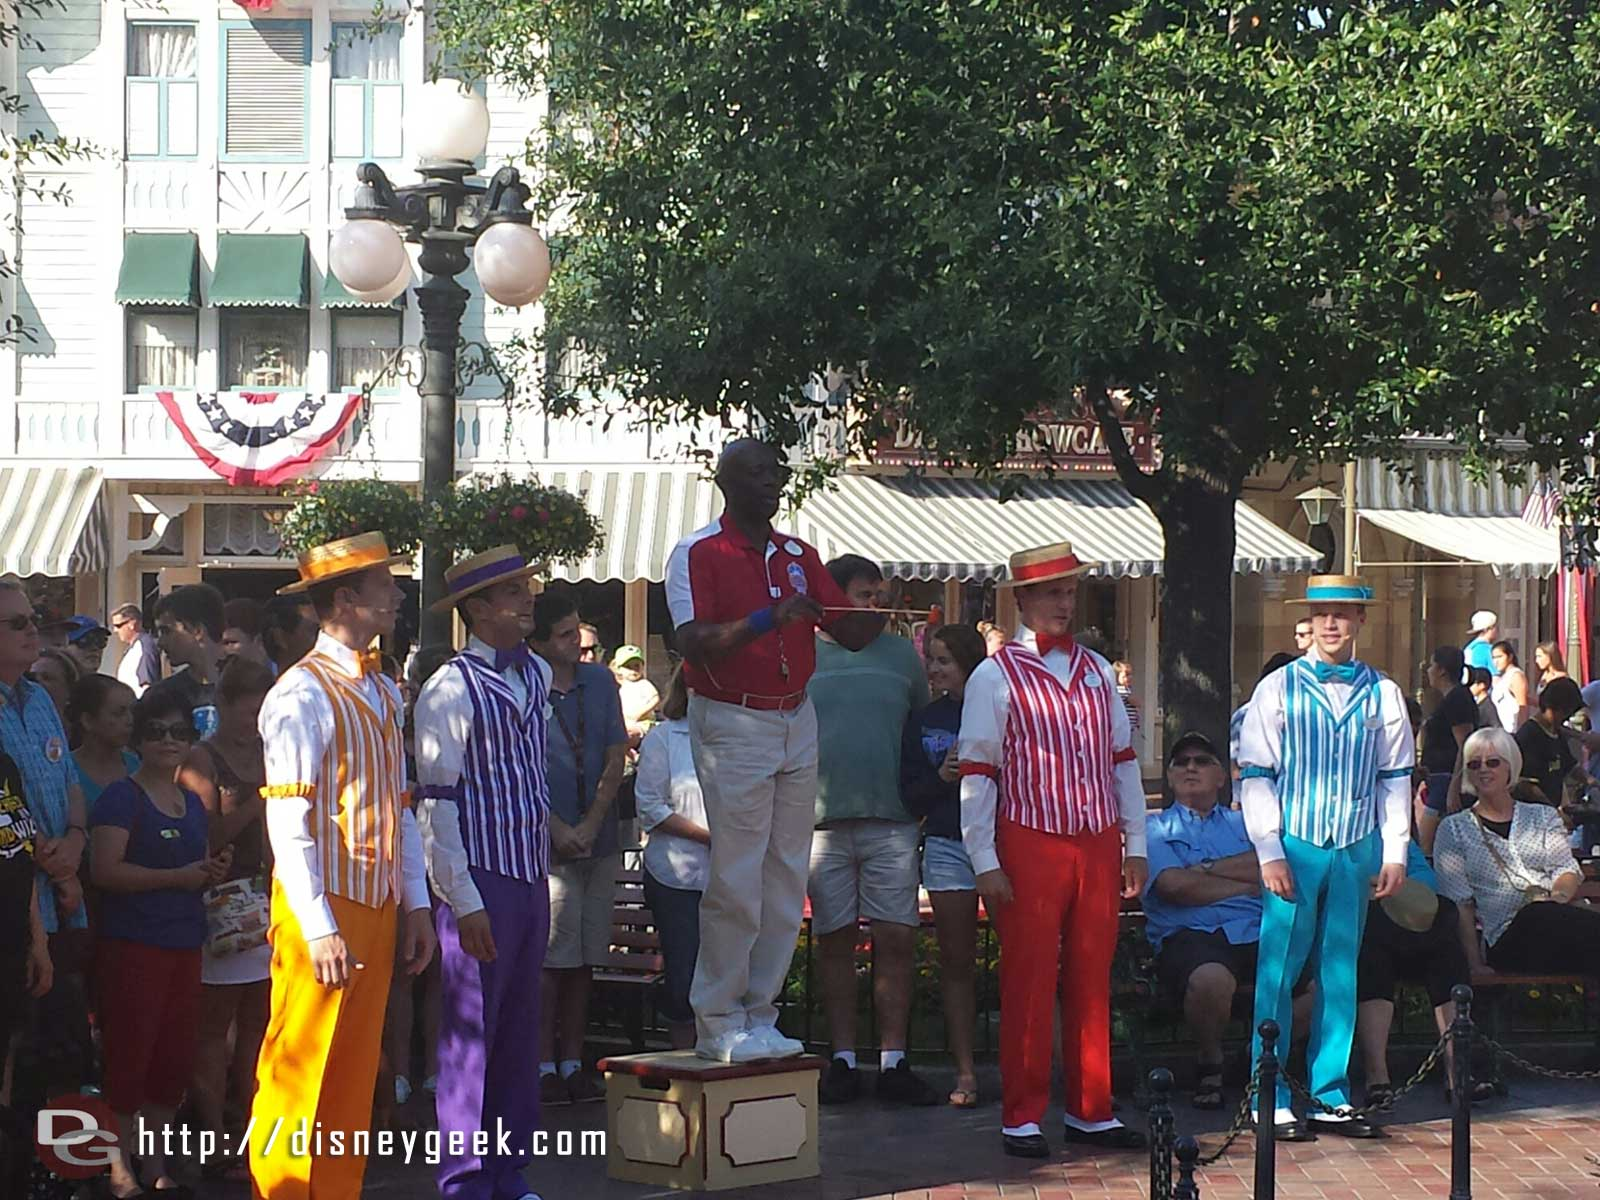 The Dapper Dans of #Disneyland and Ron at the nightly Flag Retreat in Town Square